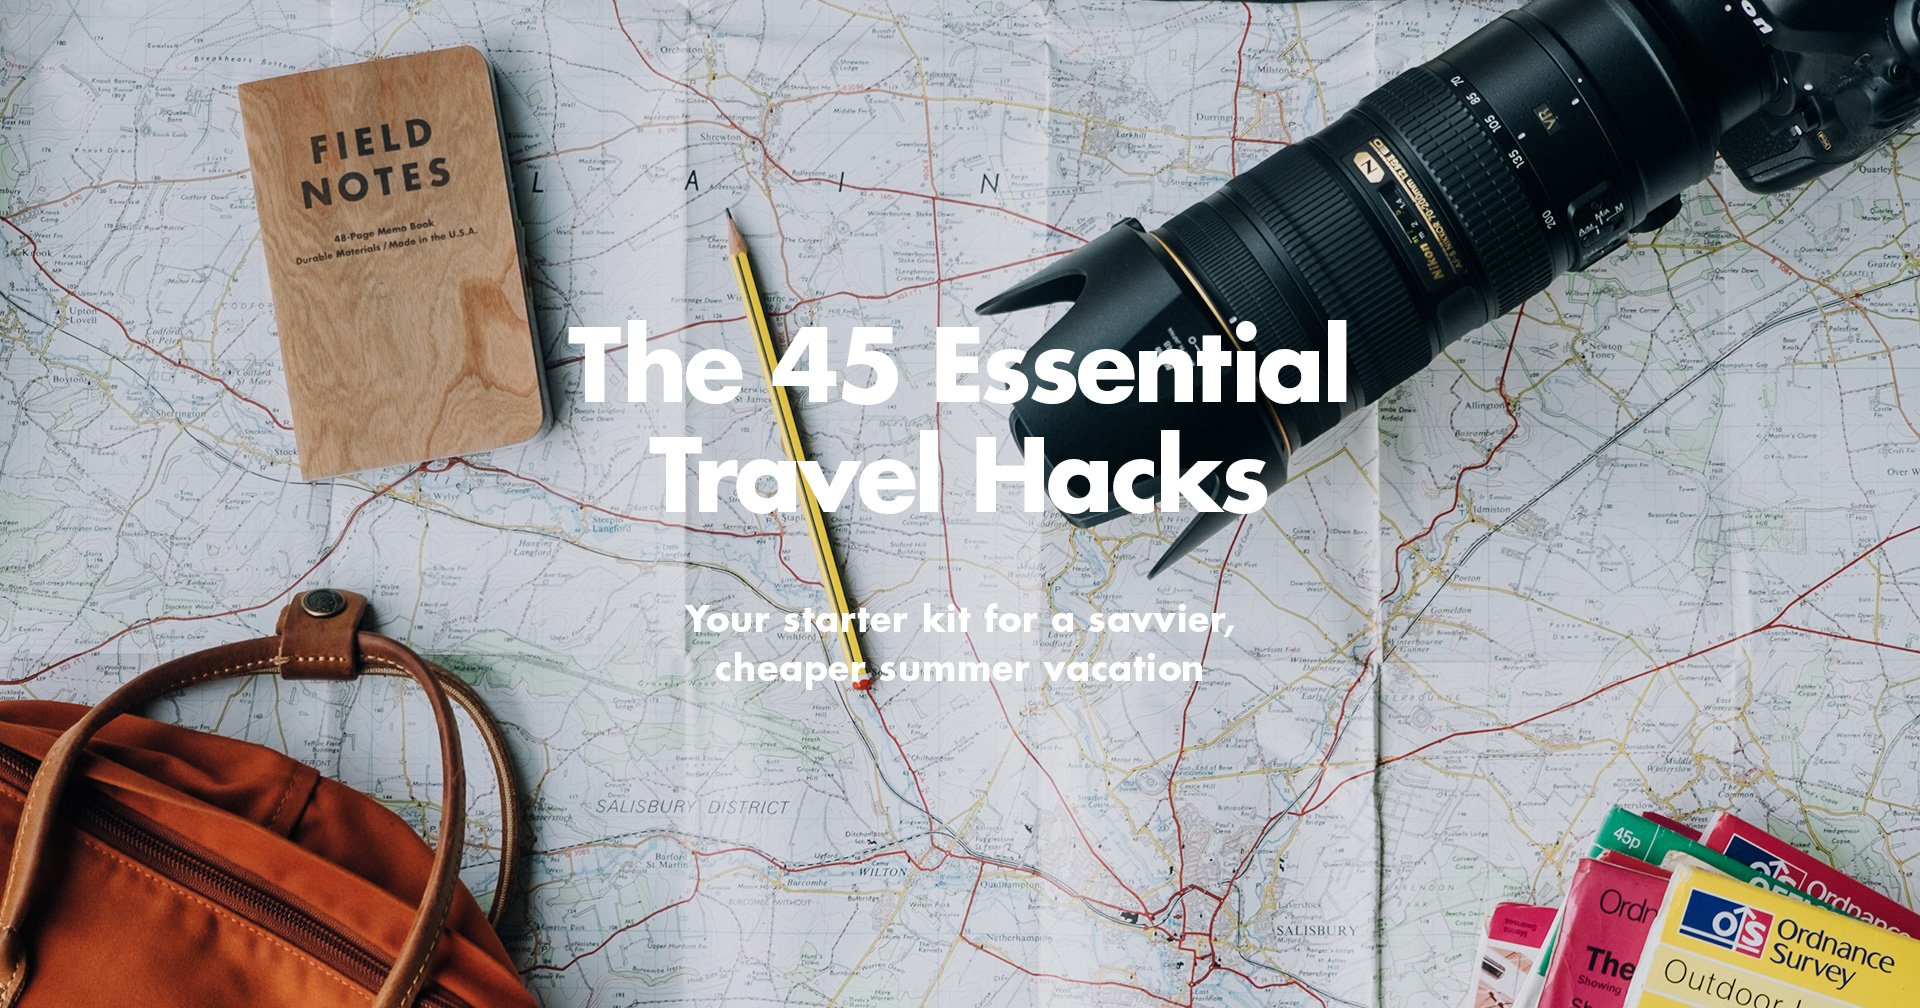 The 45 Essential Travel Hacks